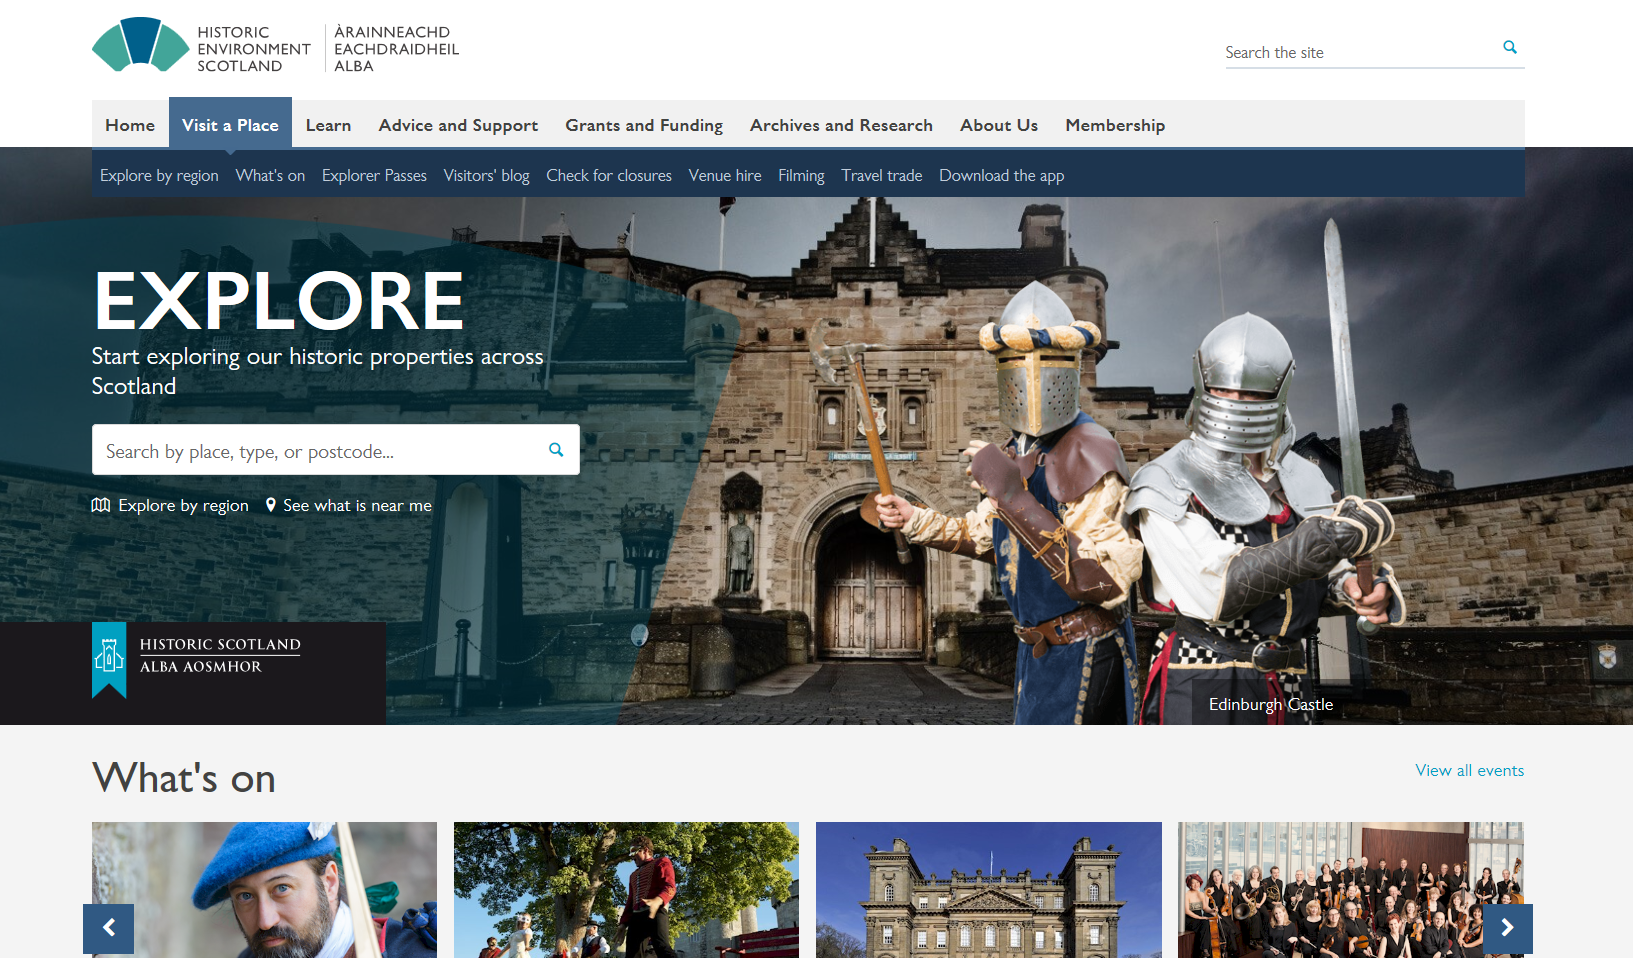 The 'visit a place' section of the new HES website